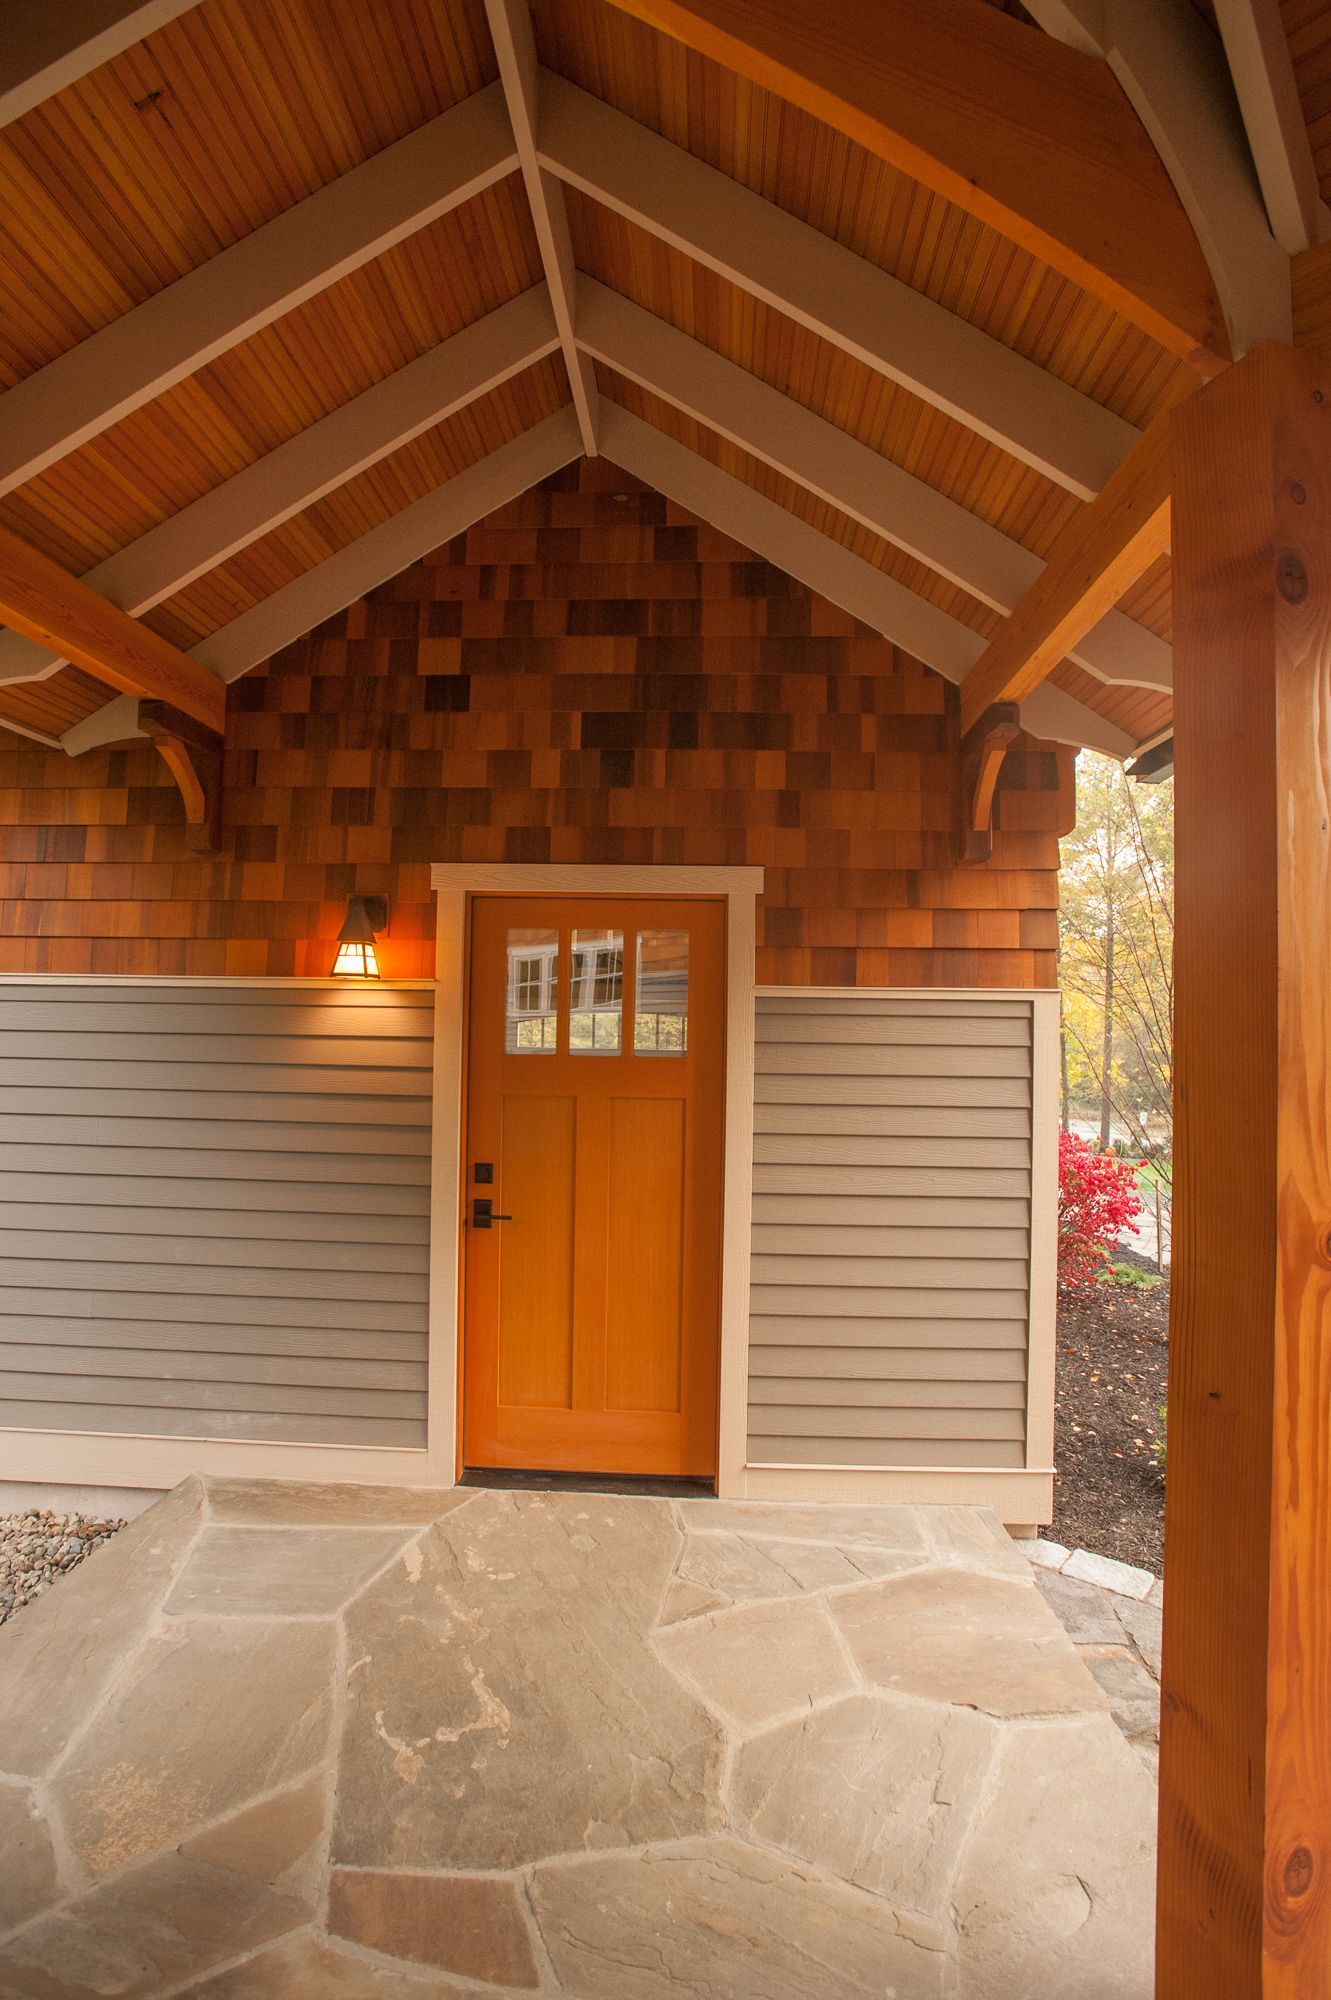 Breezeway between garage and house, wooden overhead